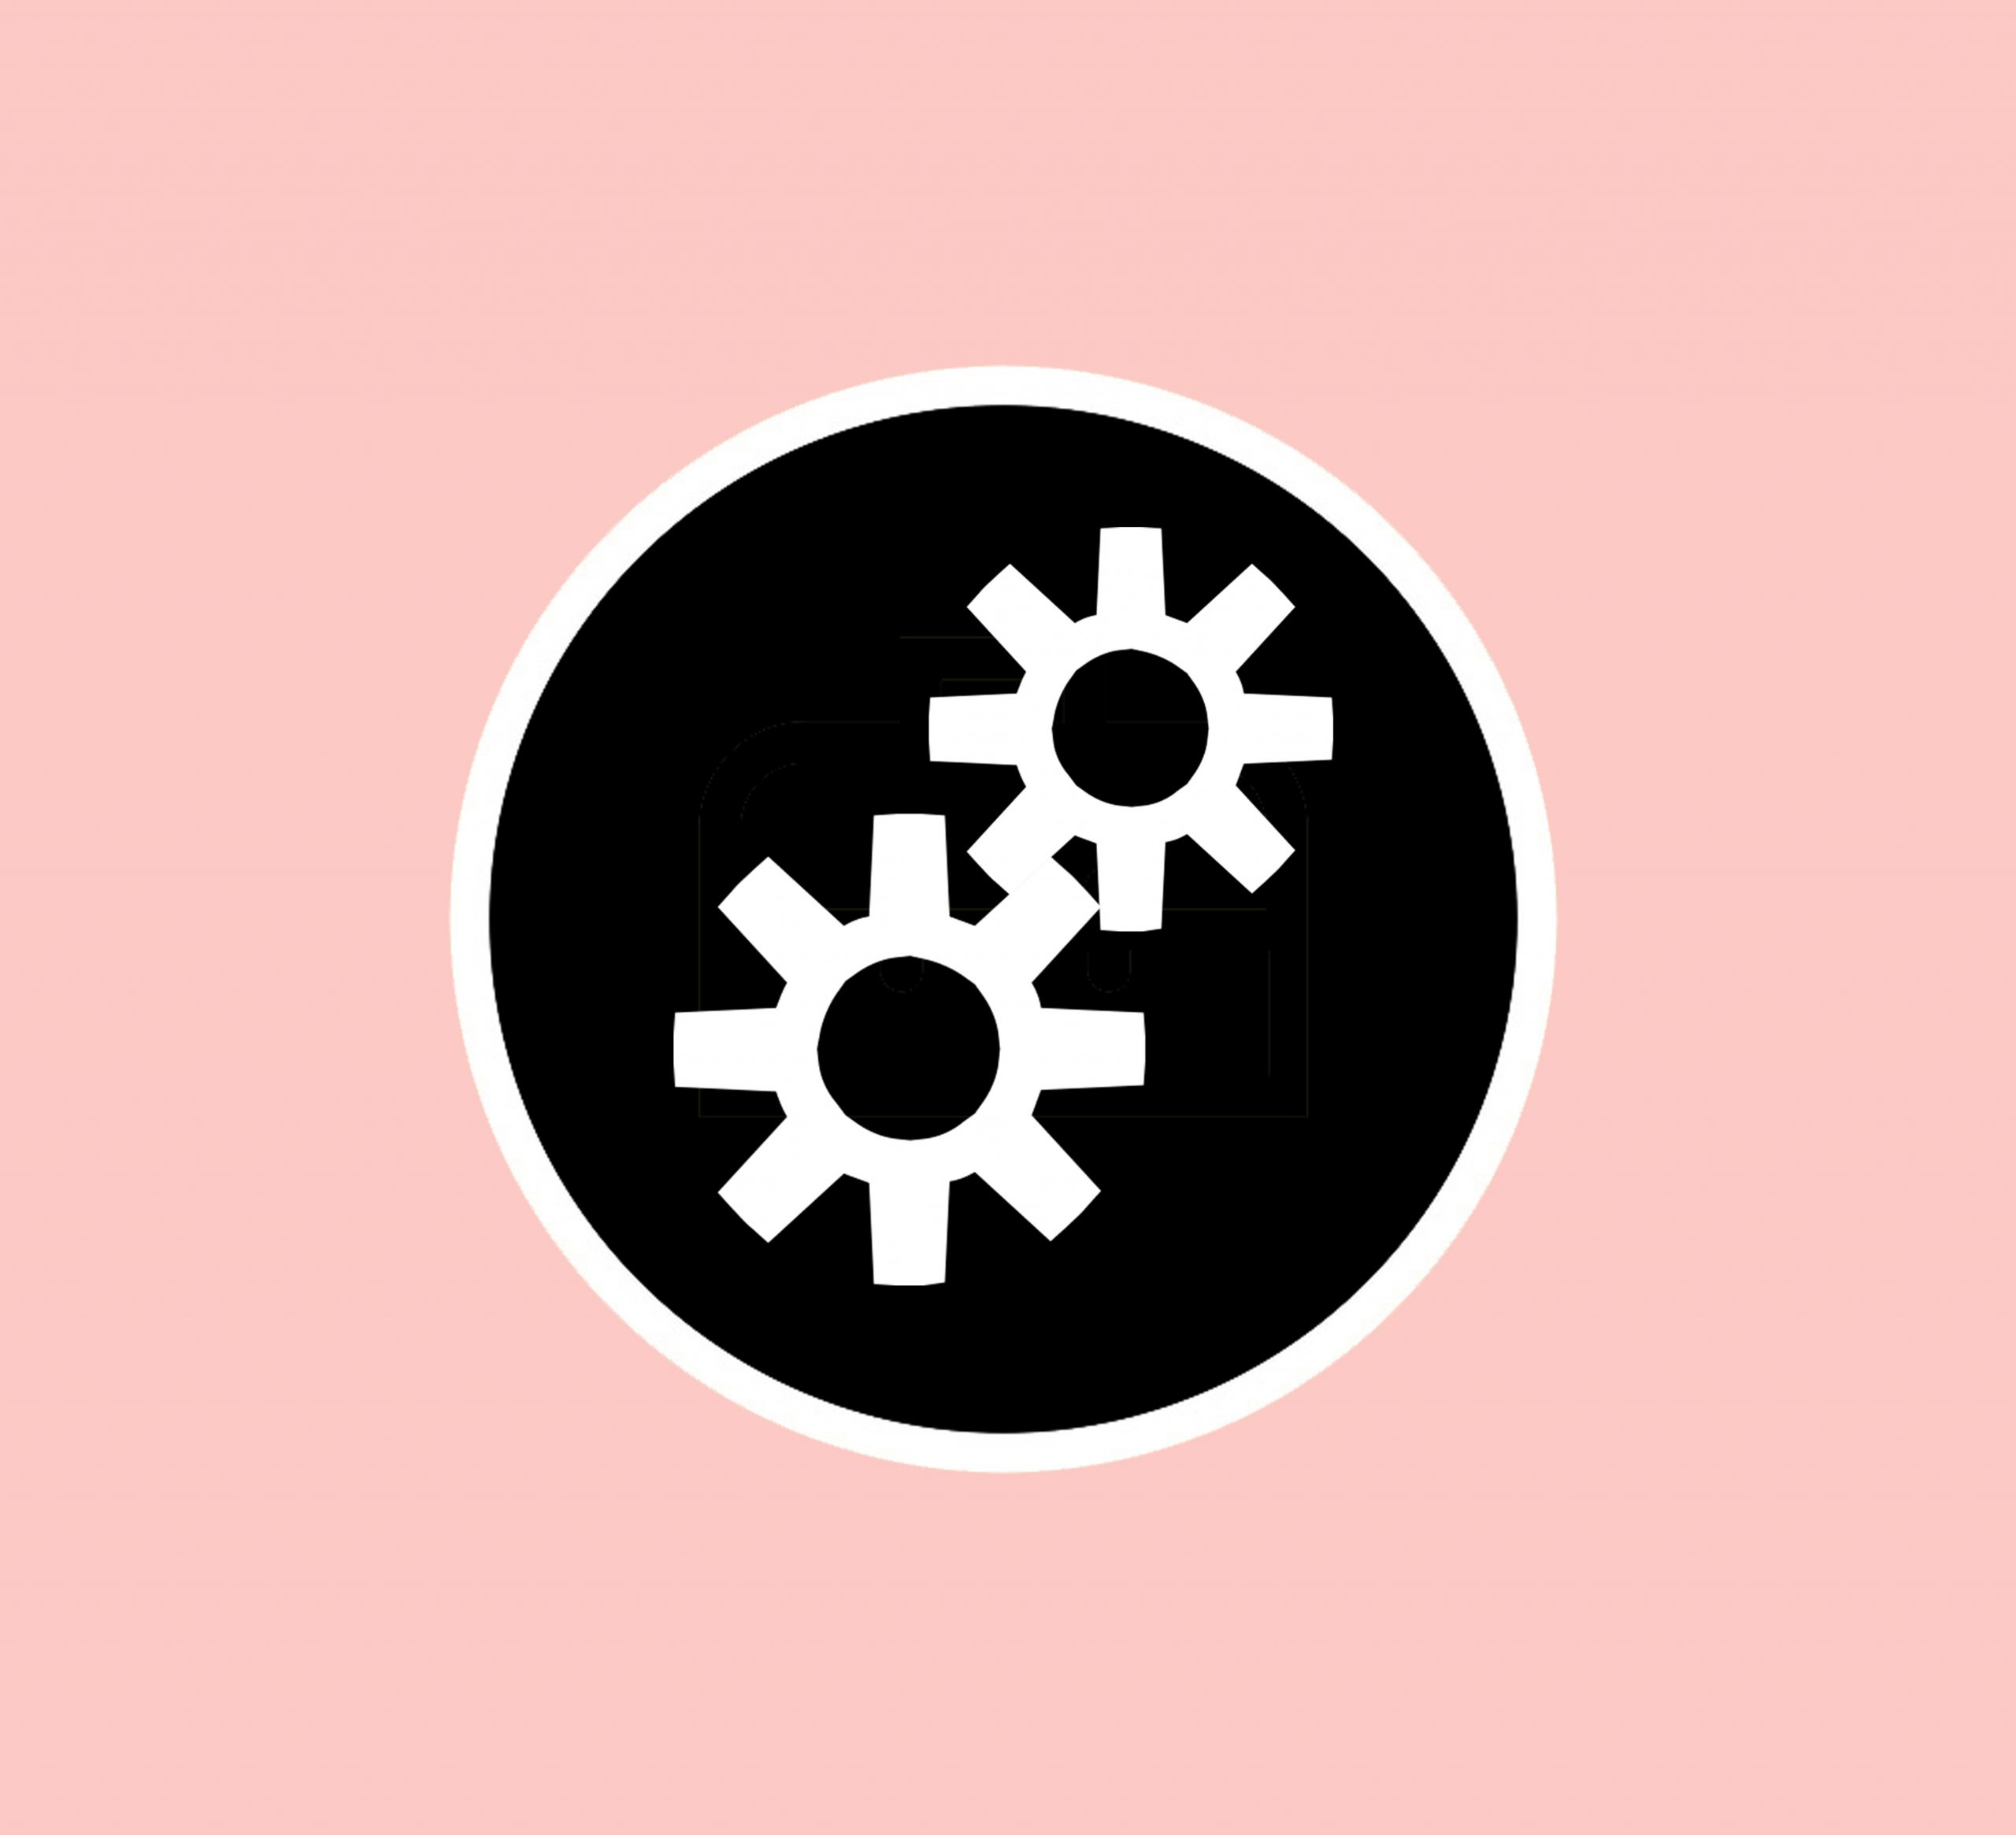 Simple black and white logo of two cogs, with a pink background